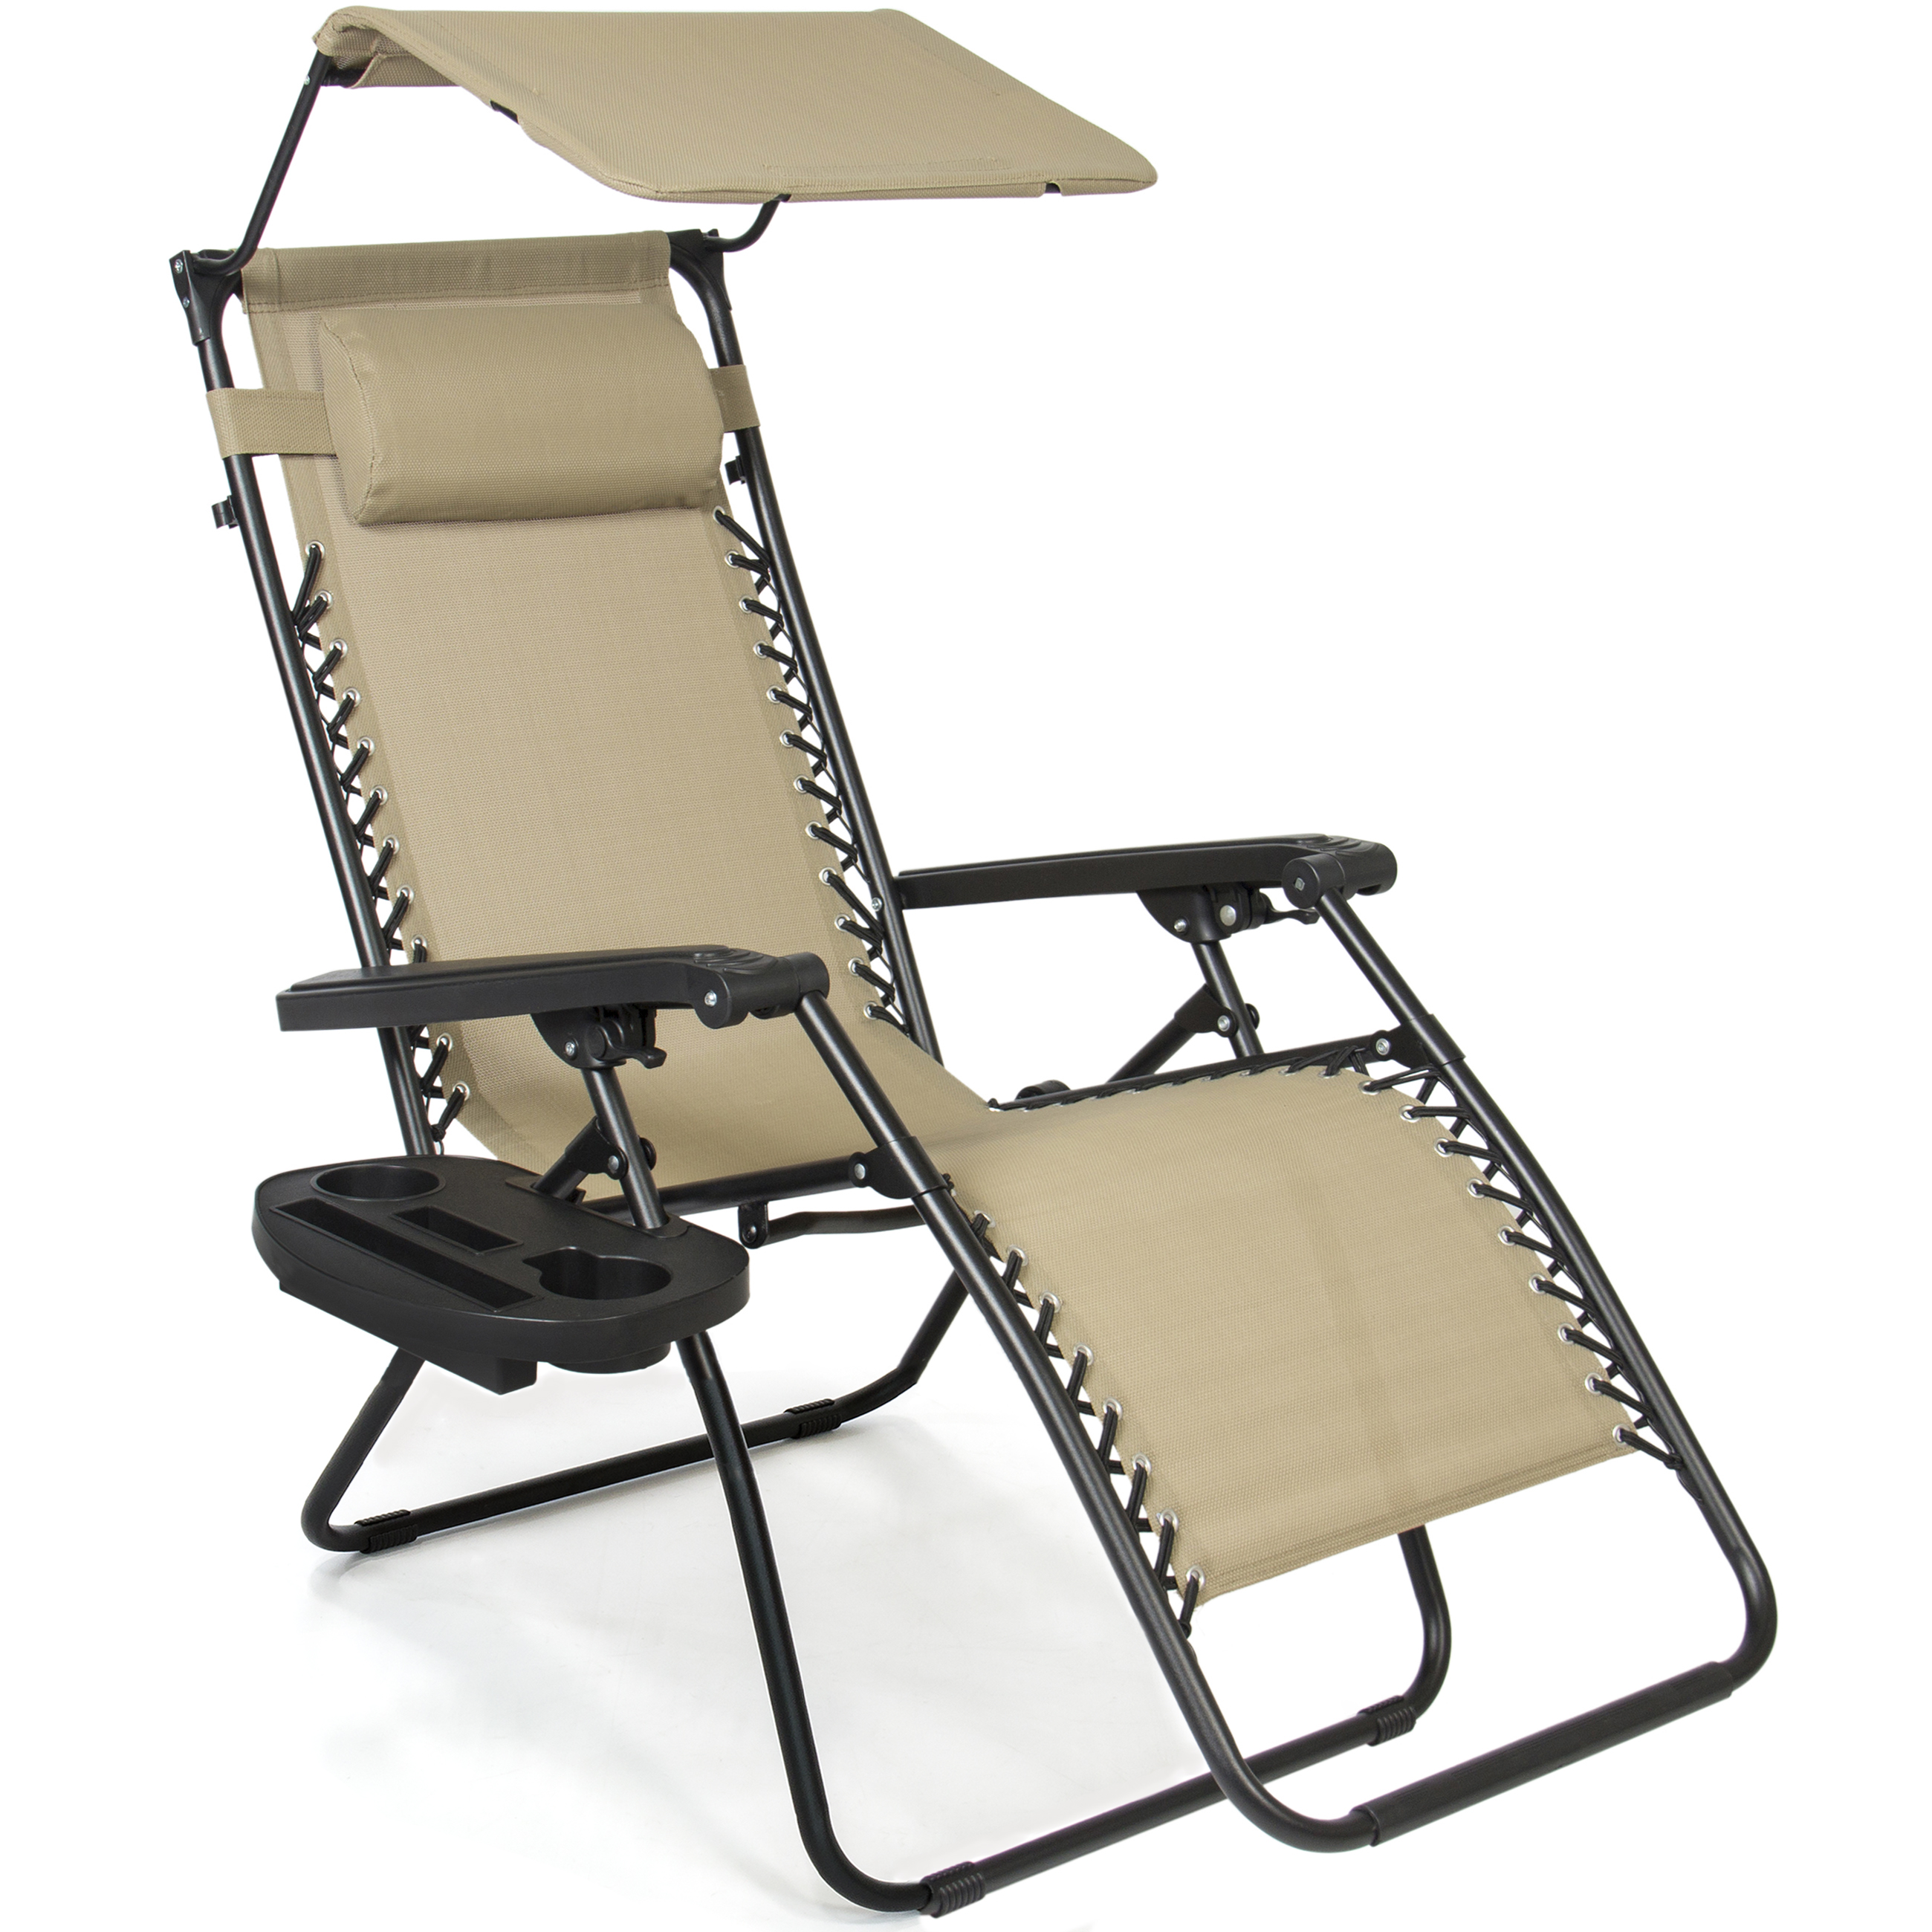 Folding Zero Gravity Recliner Lounge Chair With Canopy Shade & Magazine Cup Holder - zero gravity chair with cup holder